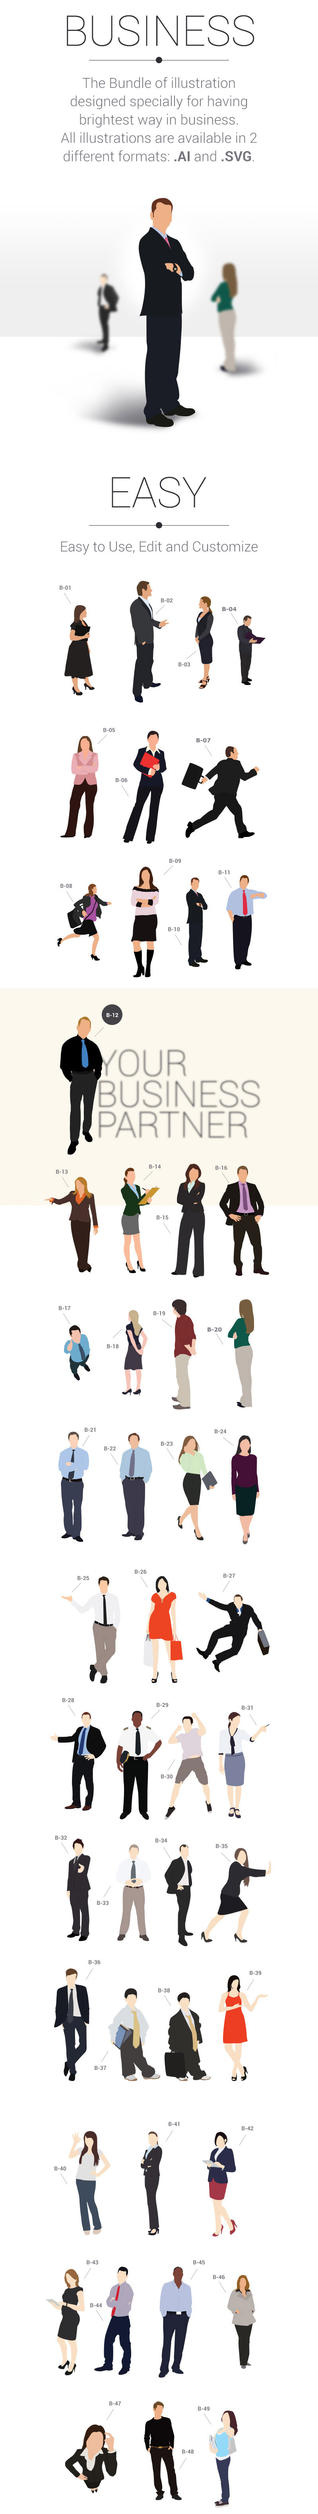 123 Business Character Illustration by atifarshad